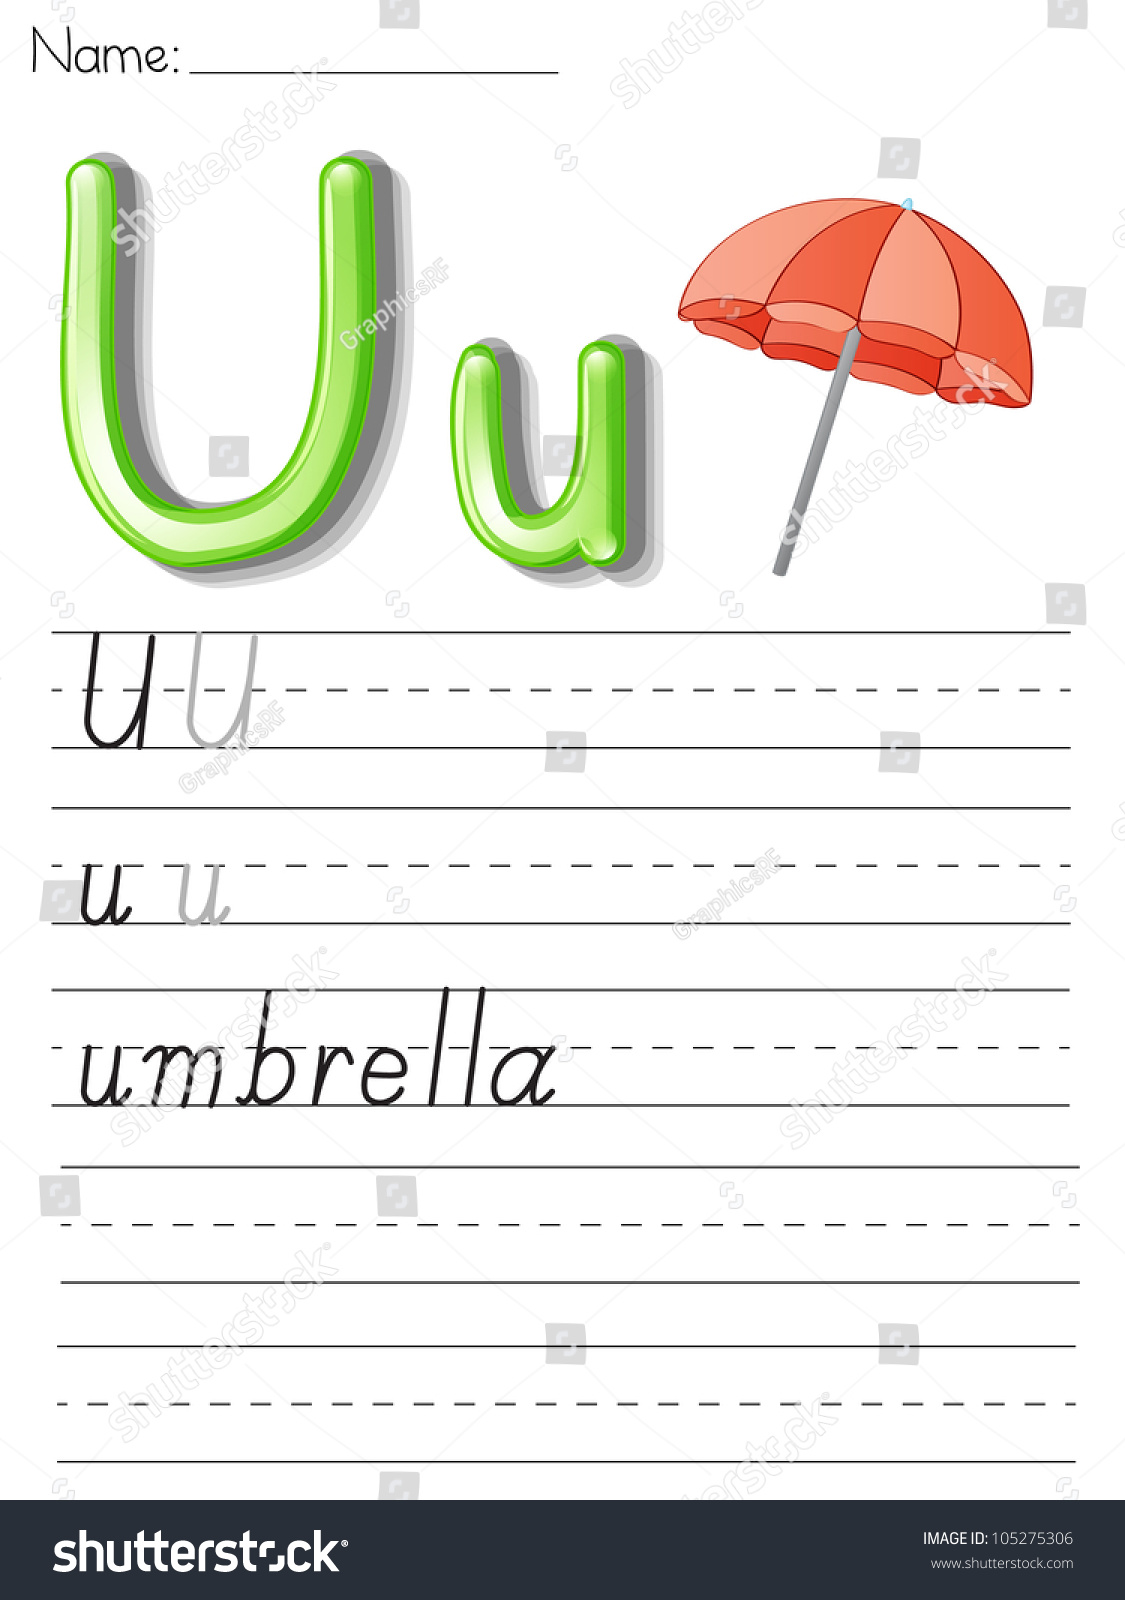 Illustrated Alphabet Worksheet Letter U Stock Illustration